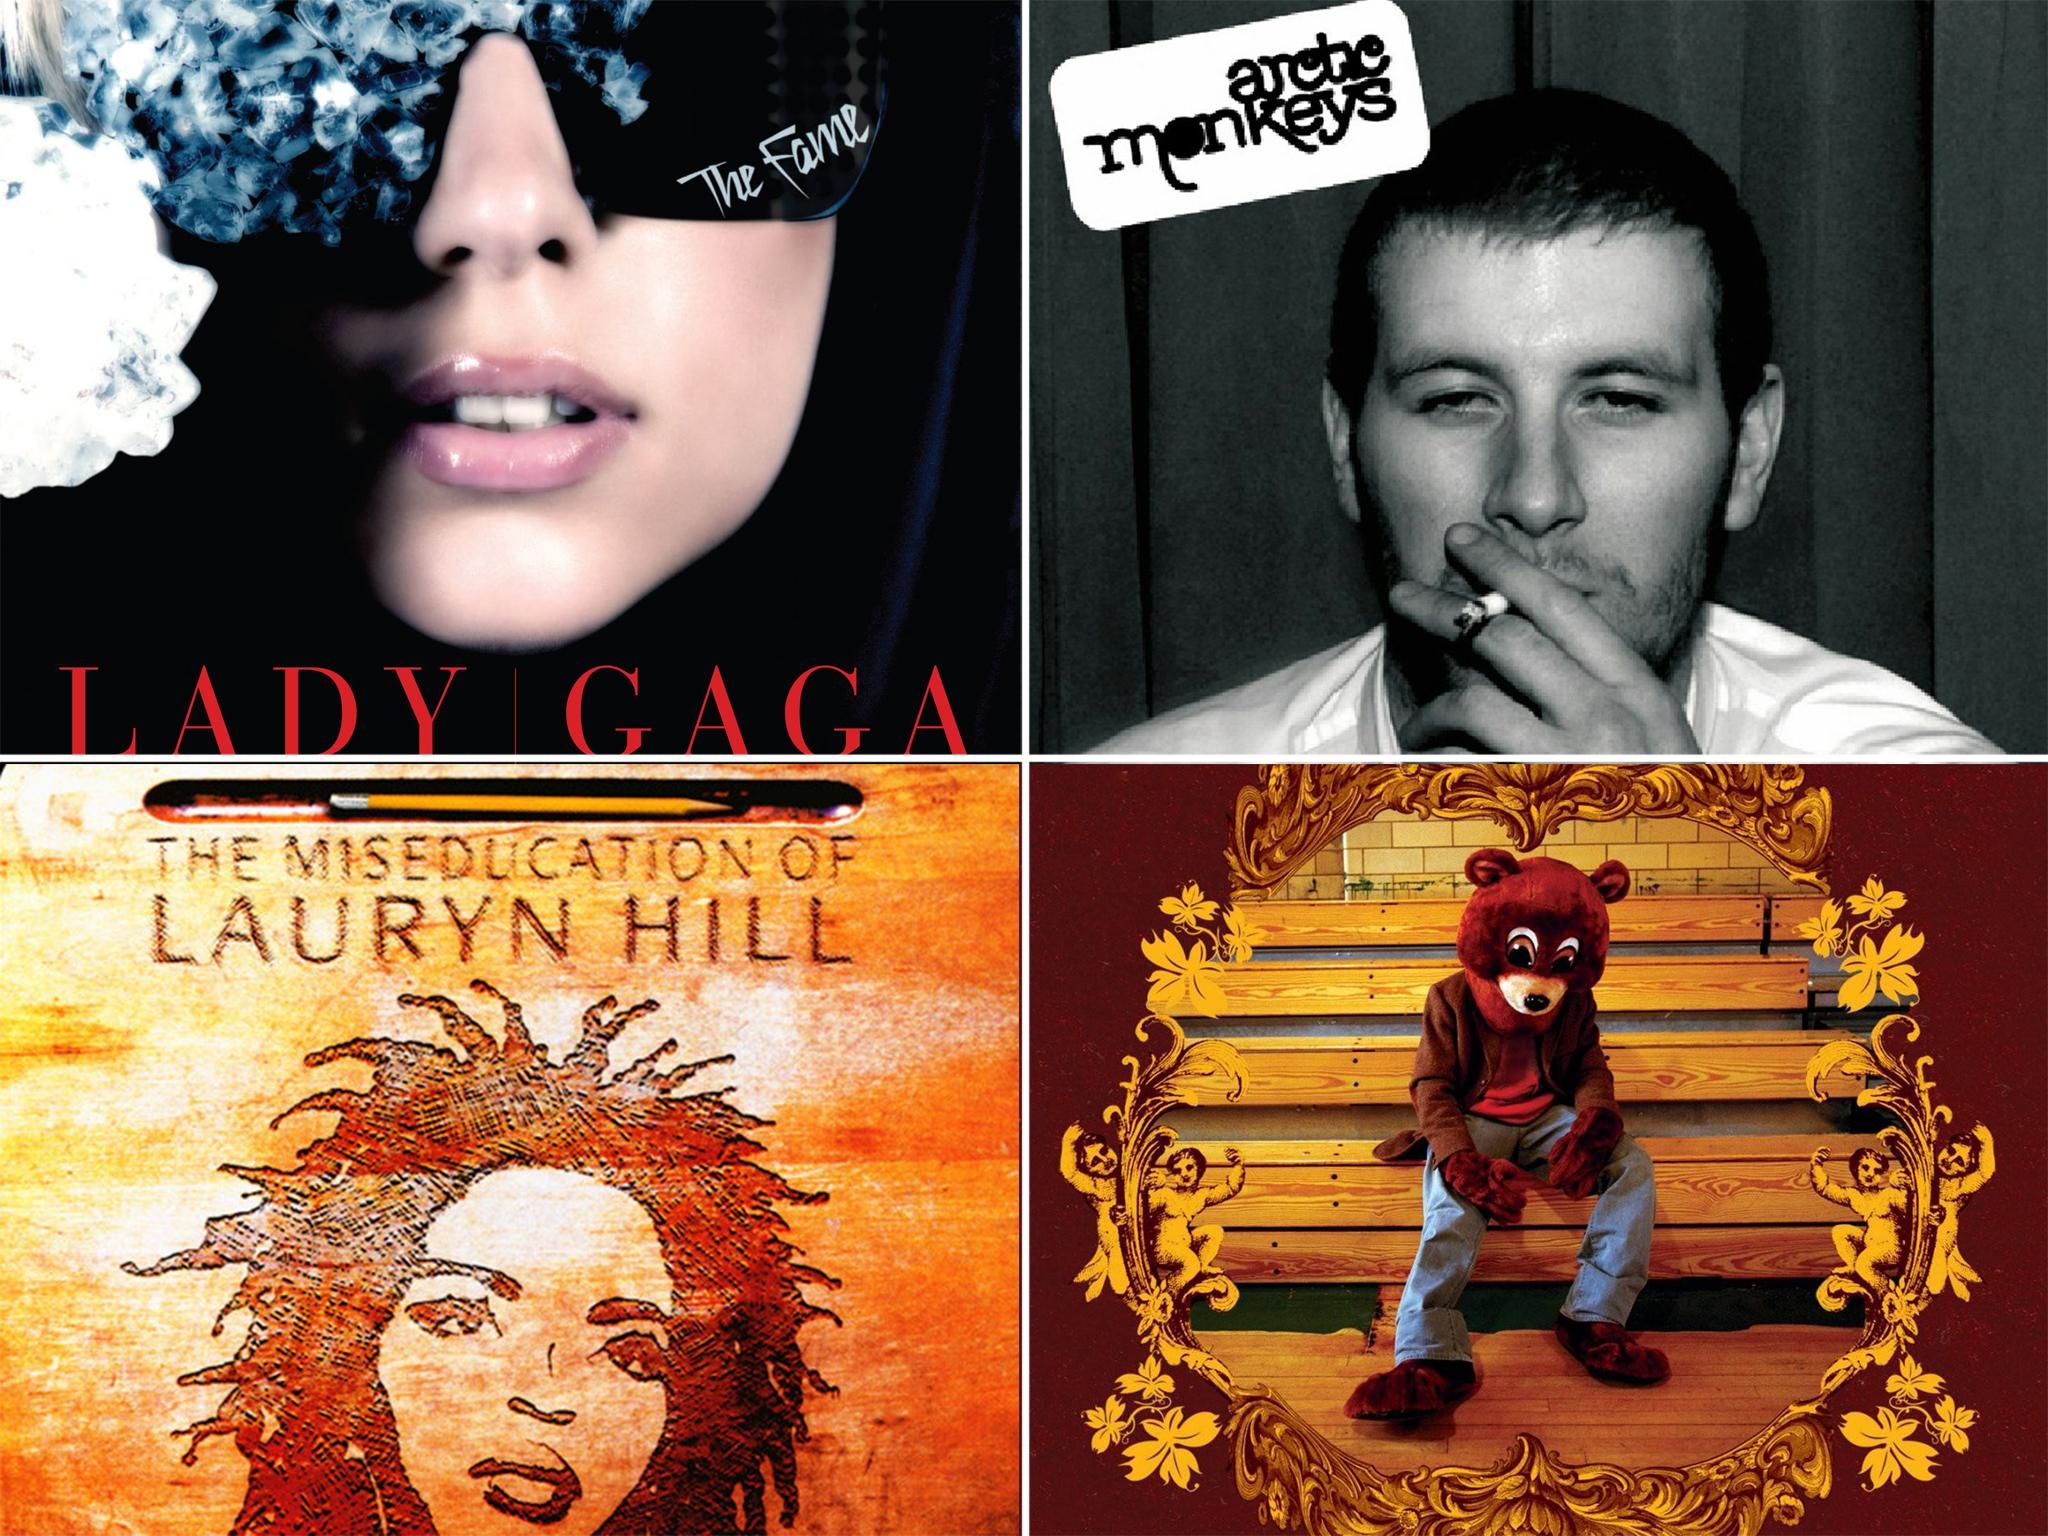 The 35 greatest debut albums of all time